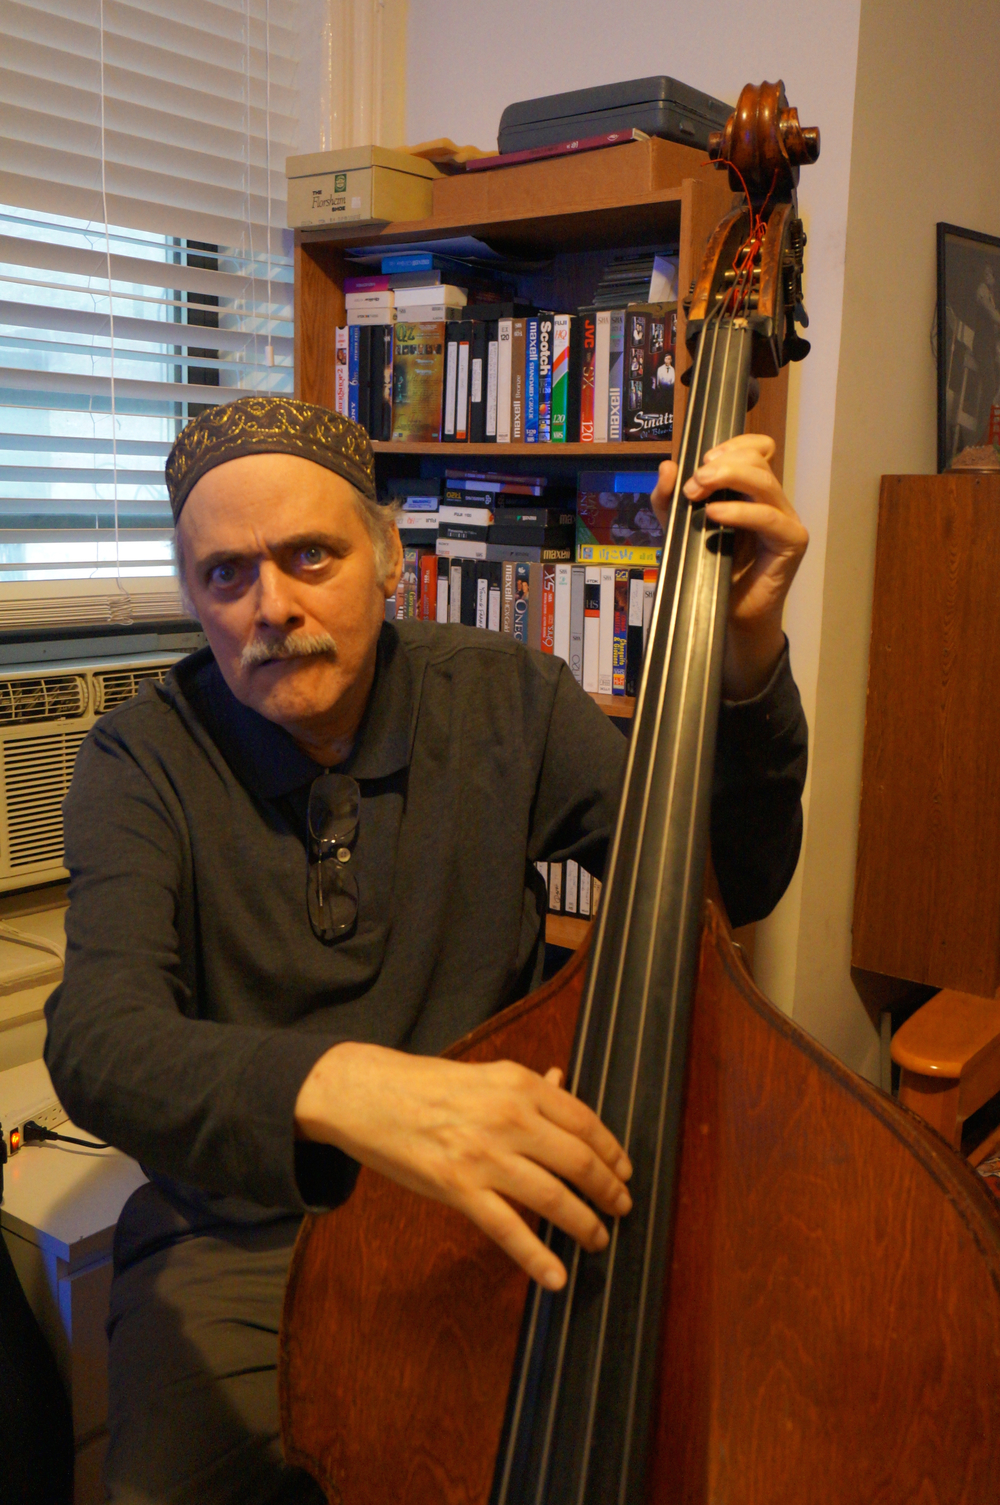 Andy Gonzalez  is a renowned Latin Jazz bassist.  He was a founding member of   Grupo Folklórico y Experimental Nuevayorkino the Fort Apache Band.